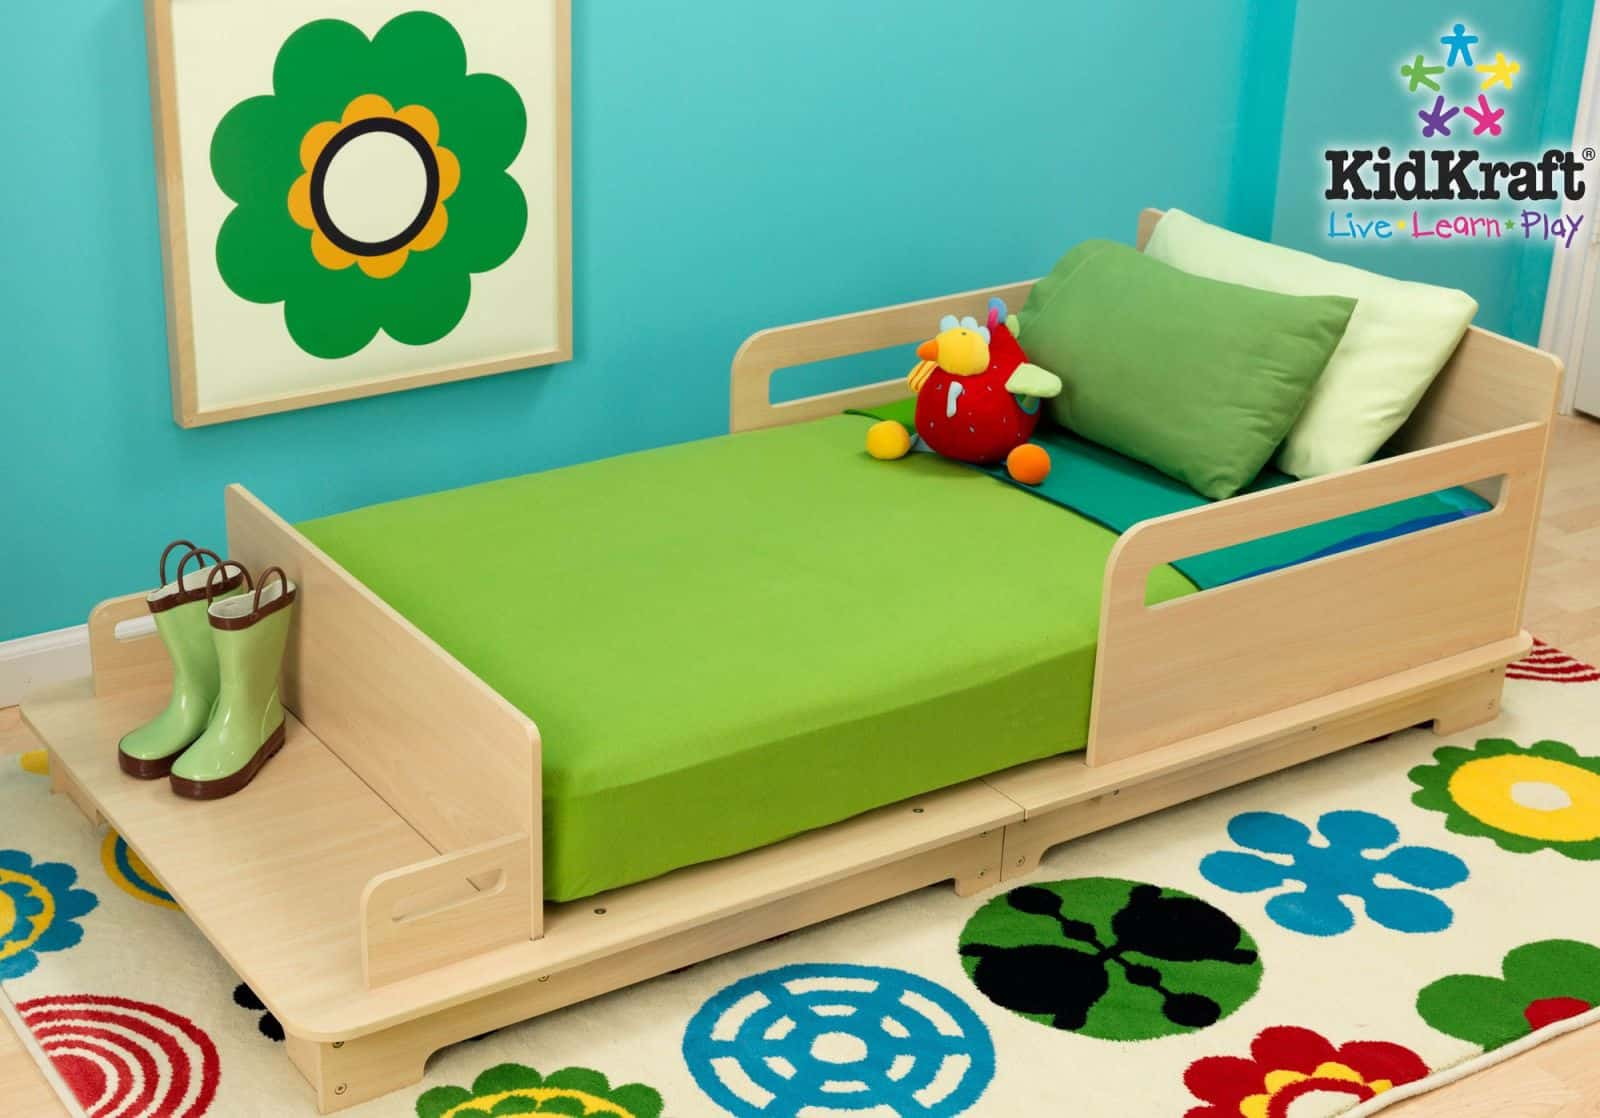 Kidcraft Modern Toddler Bed 14977 Another Contemporary Design From This Has Lines And Natural Wood Construction With A Built In